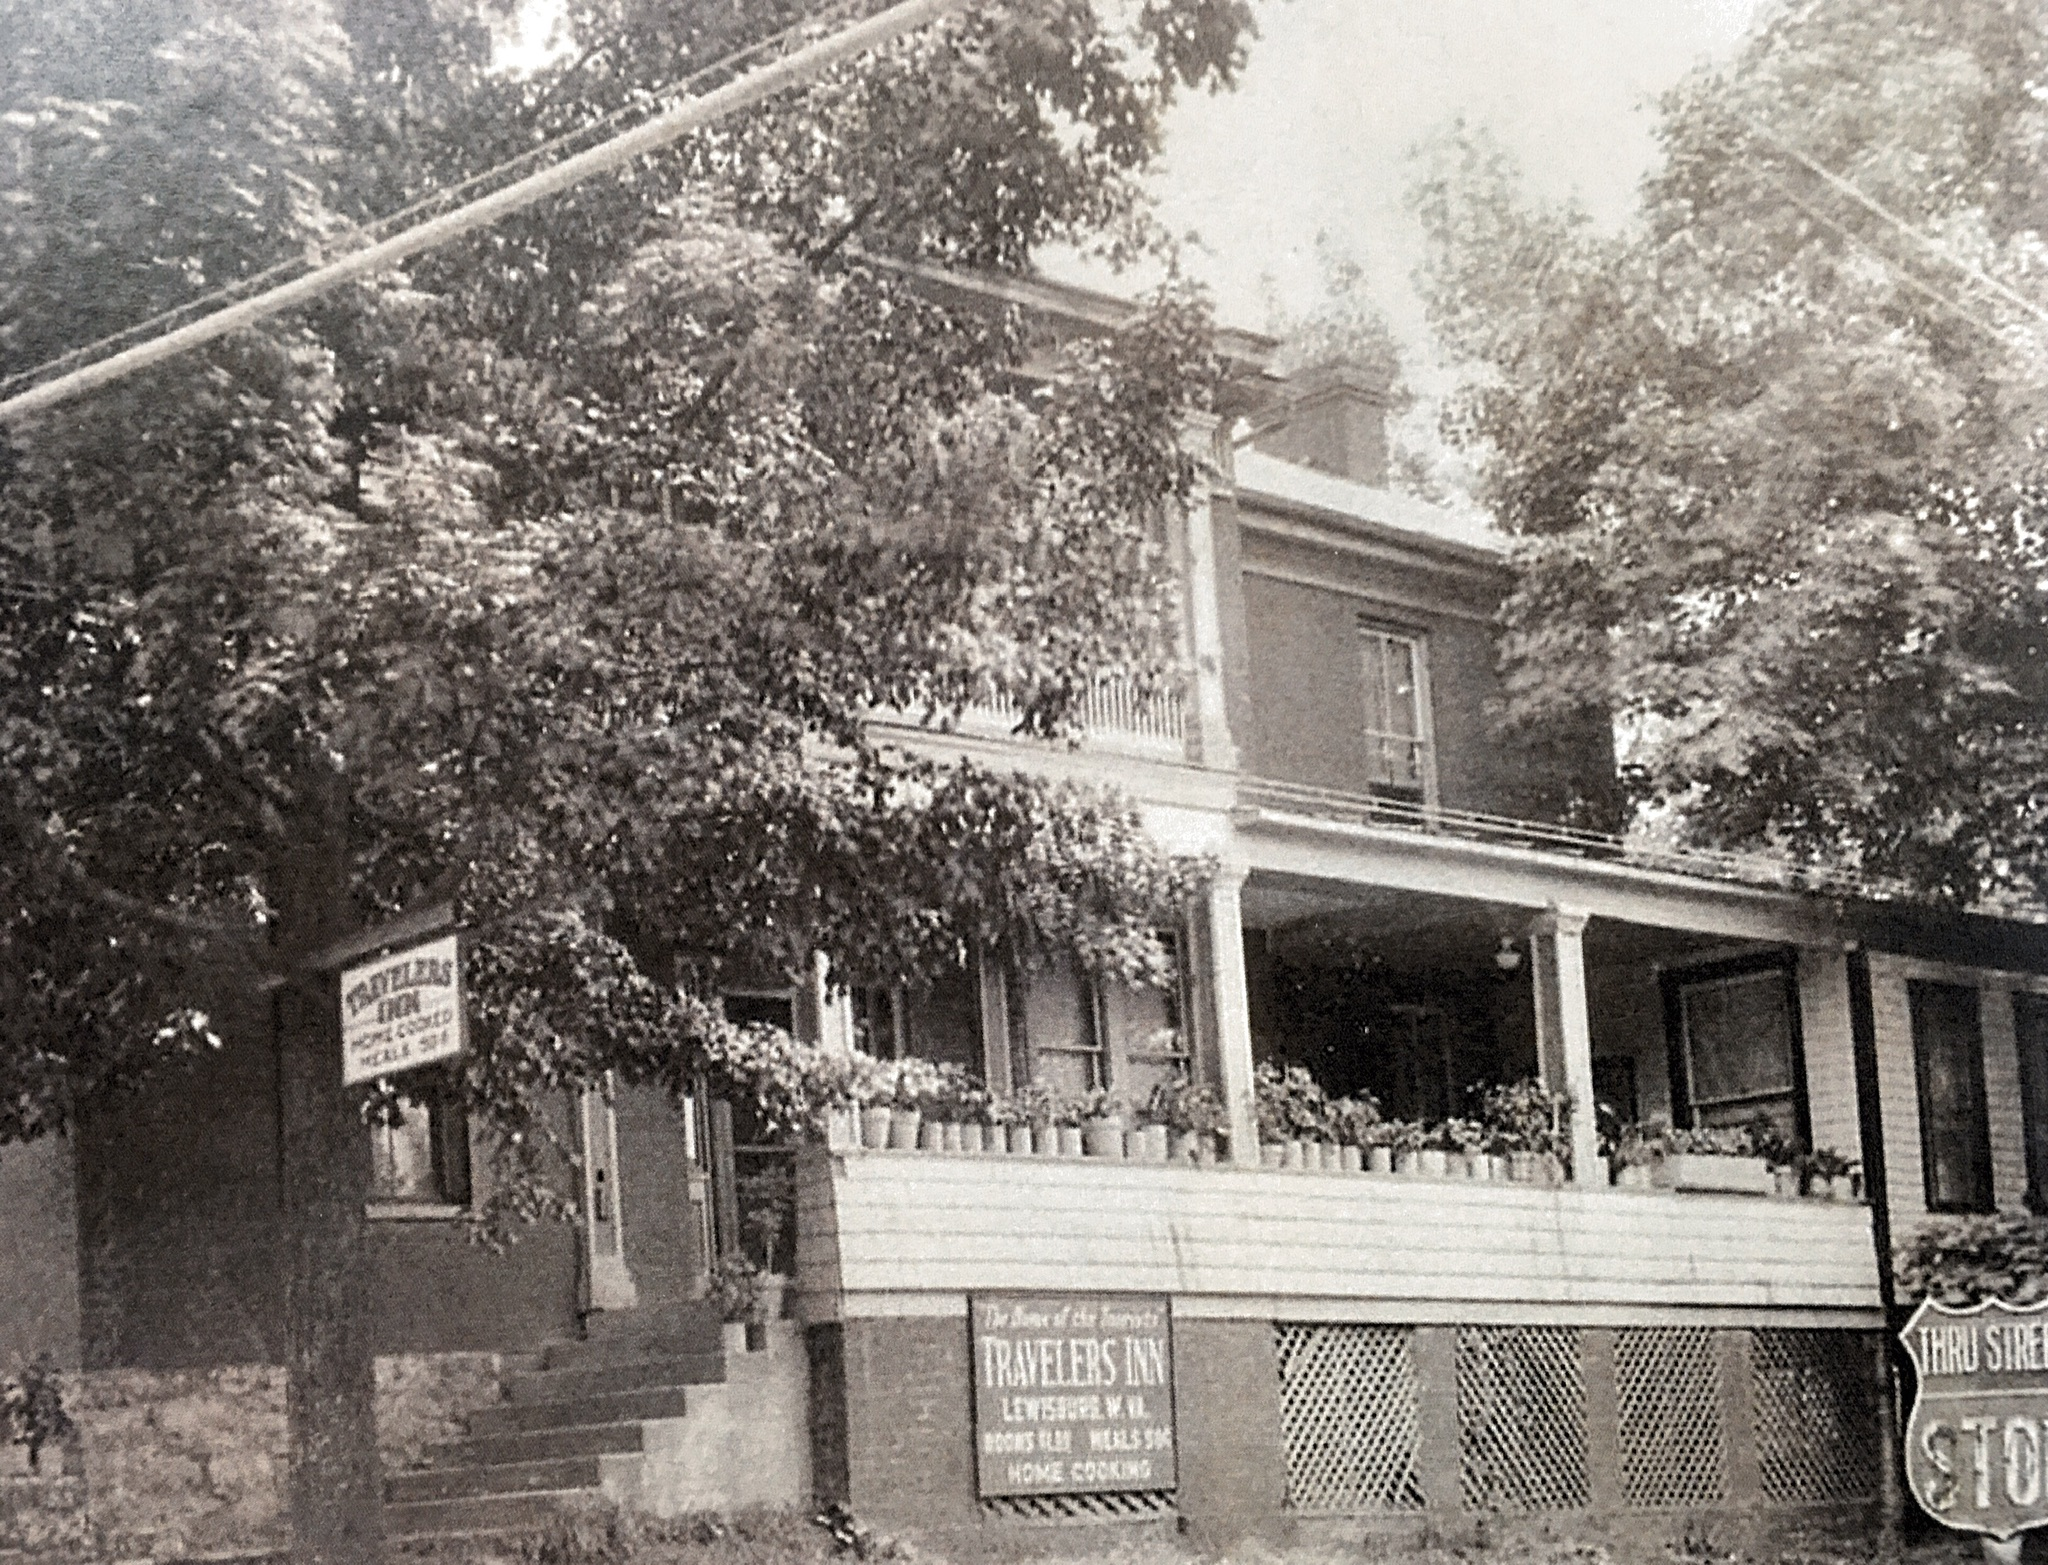 John North House in the 1930 as the Travelers Inn.